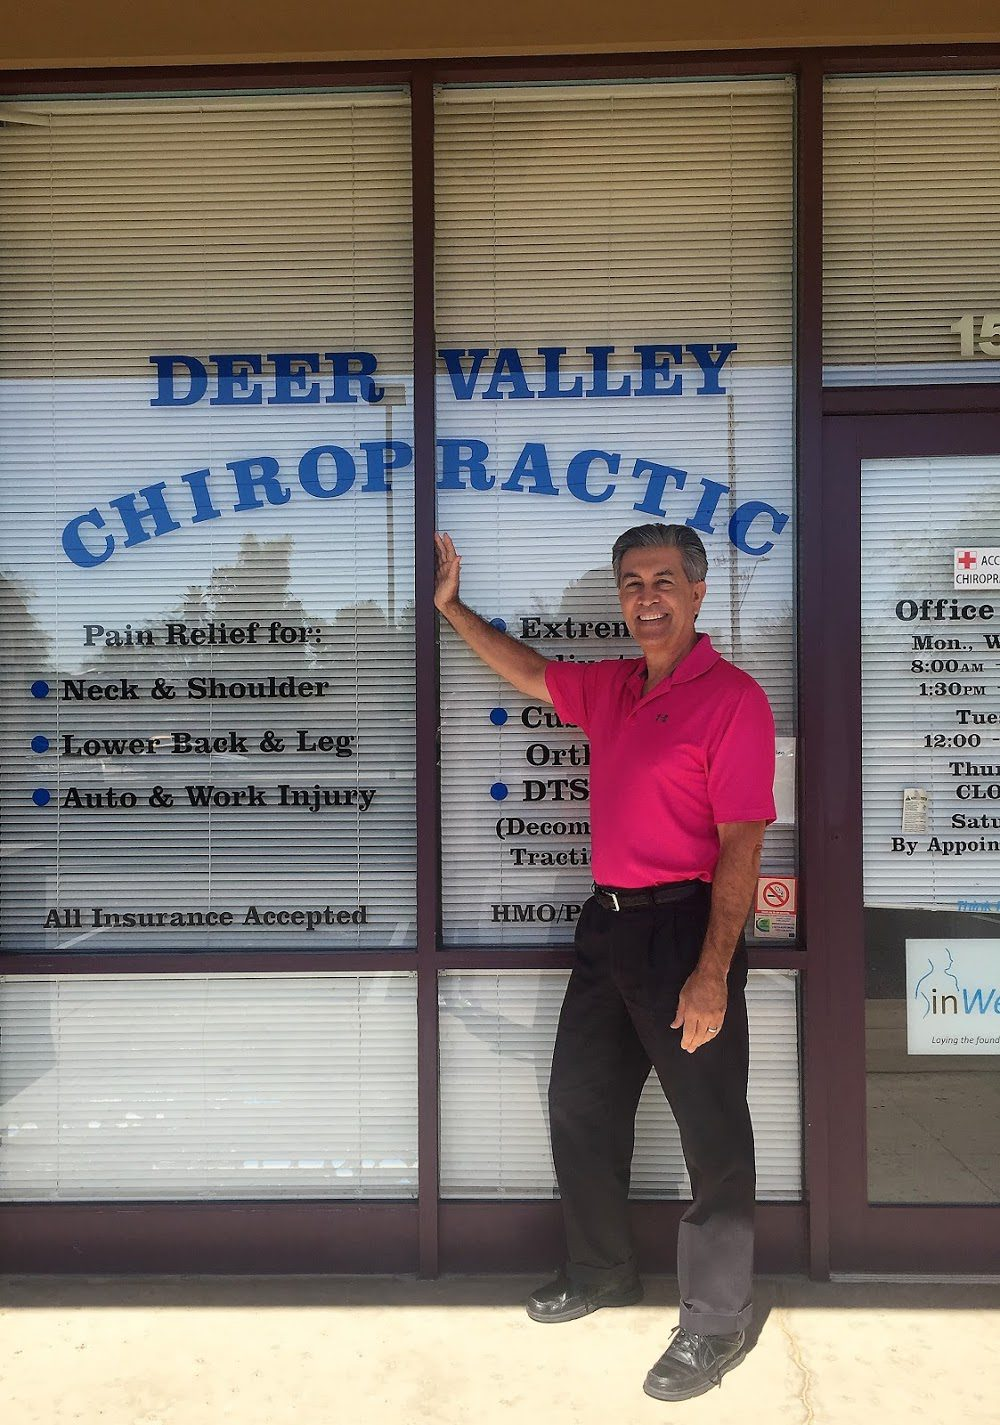 Deer Valley Chiropractic